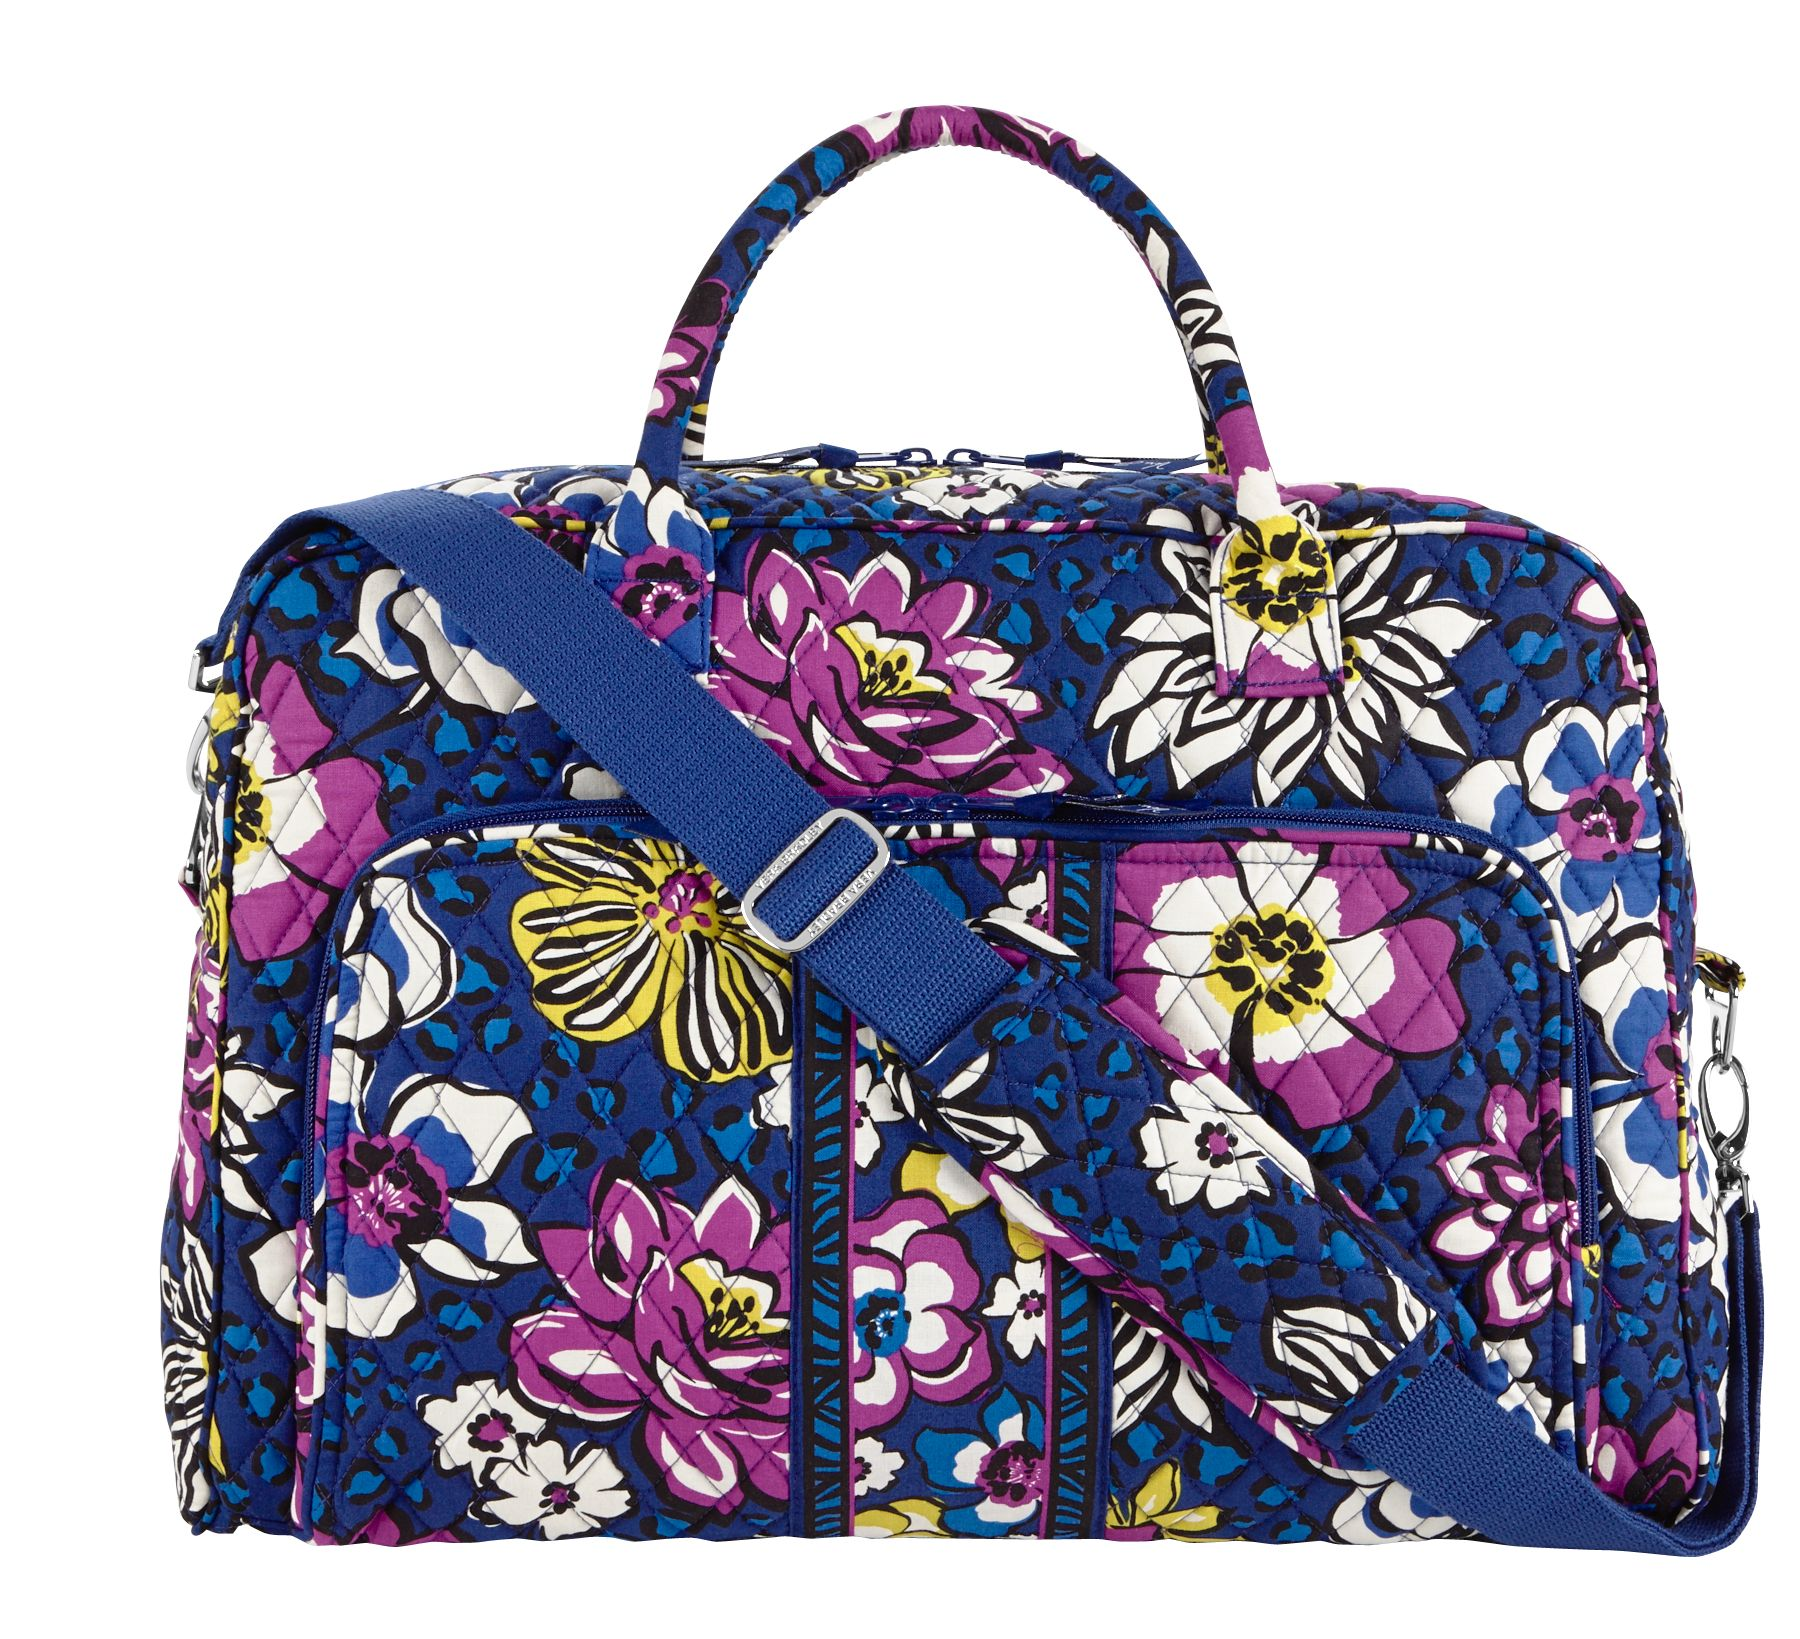 Vera Bradley Vera Bradley was founded in by two neighbors, Barbara Baekgaard and Patricia Miller, set out to change the travel bag industry by creating and .